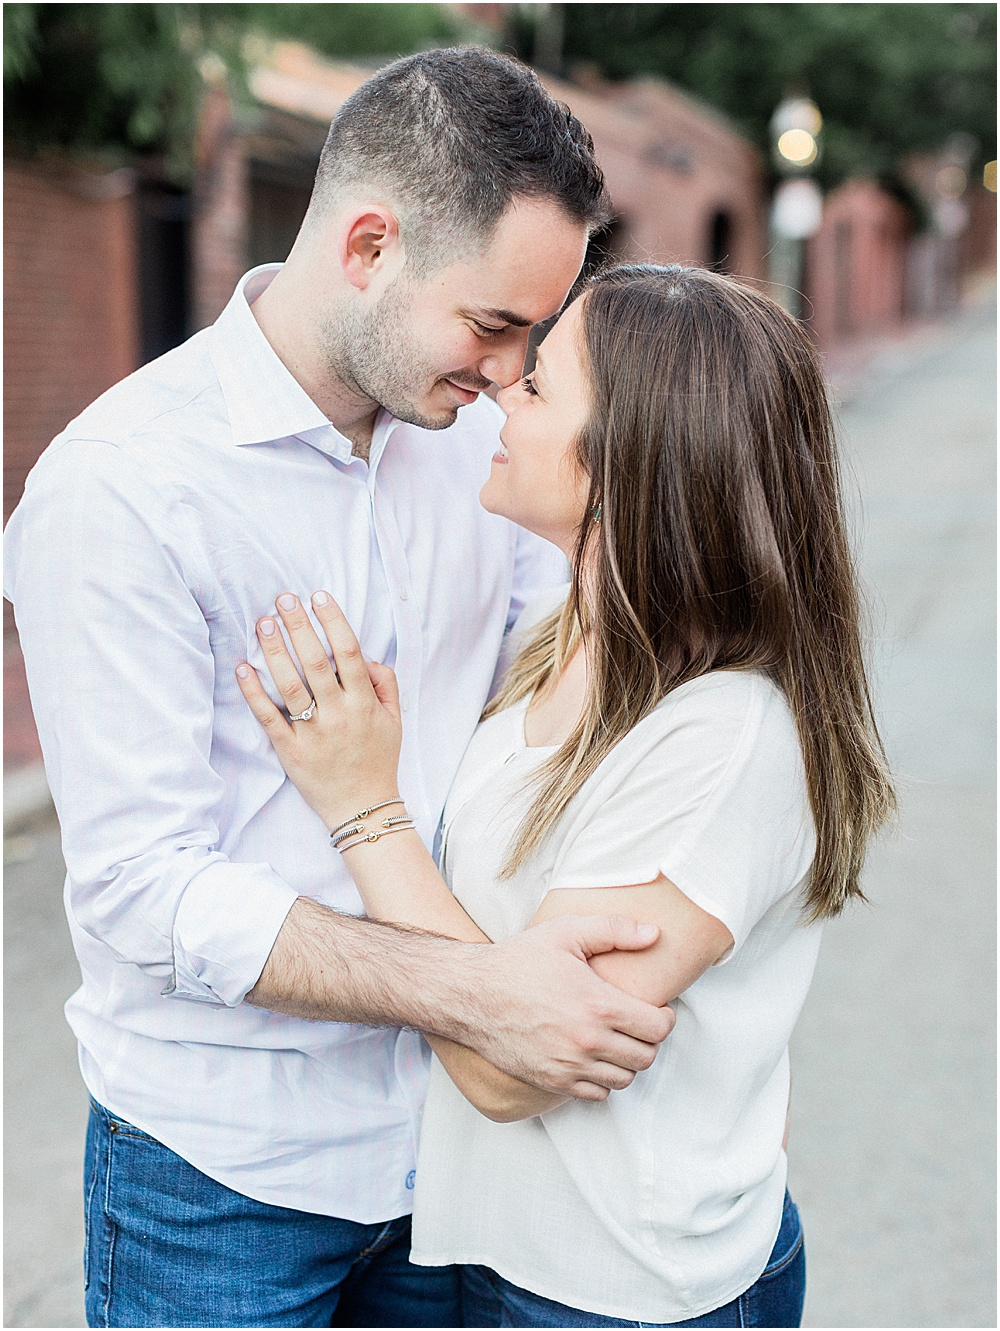 acorn_street_boston_common_garden_engagement_session_massachusetts_boston_wedding_photographer_meredith_jane_photography_photo_0452.jpg